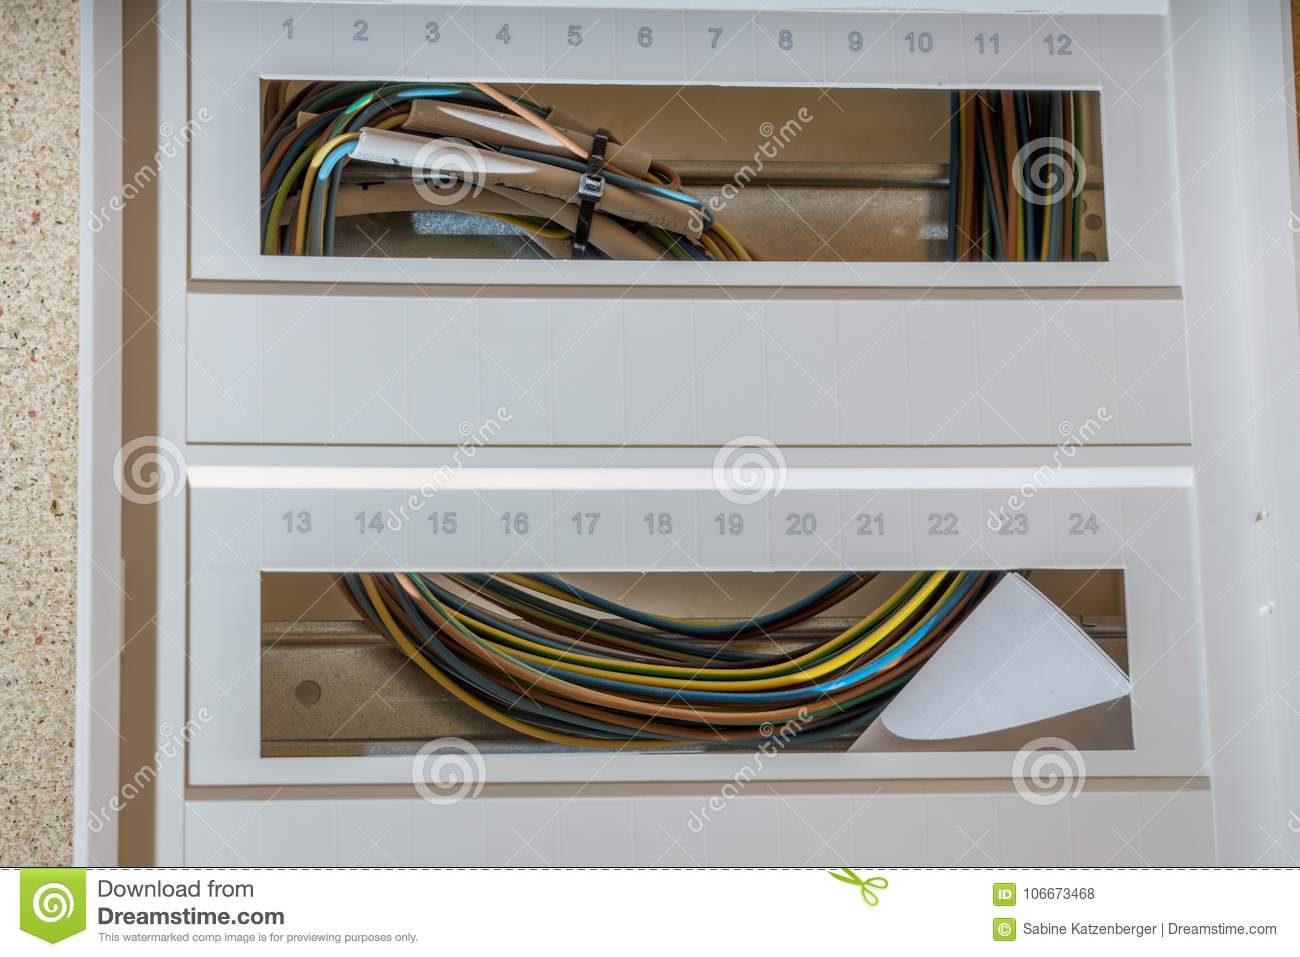 Installation of a new fuse box